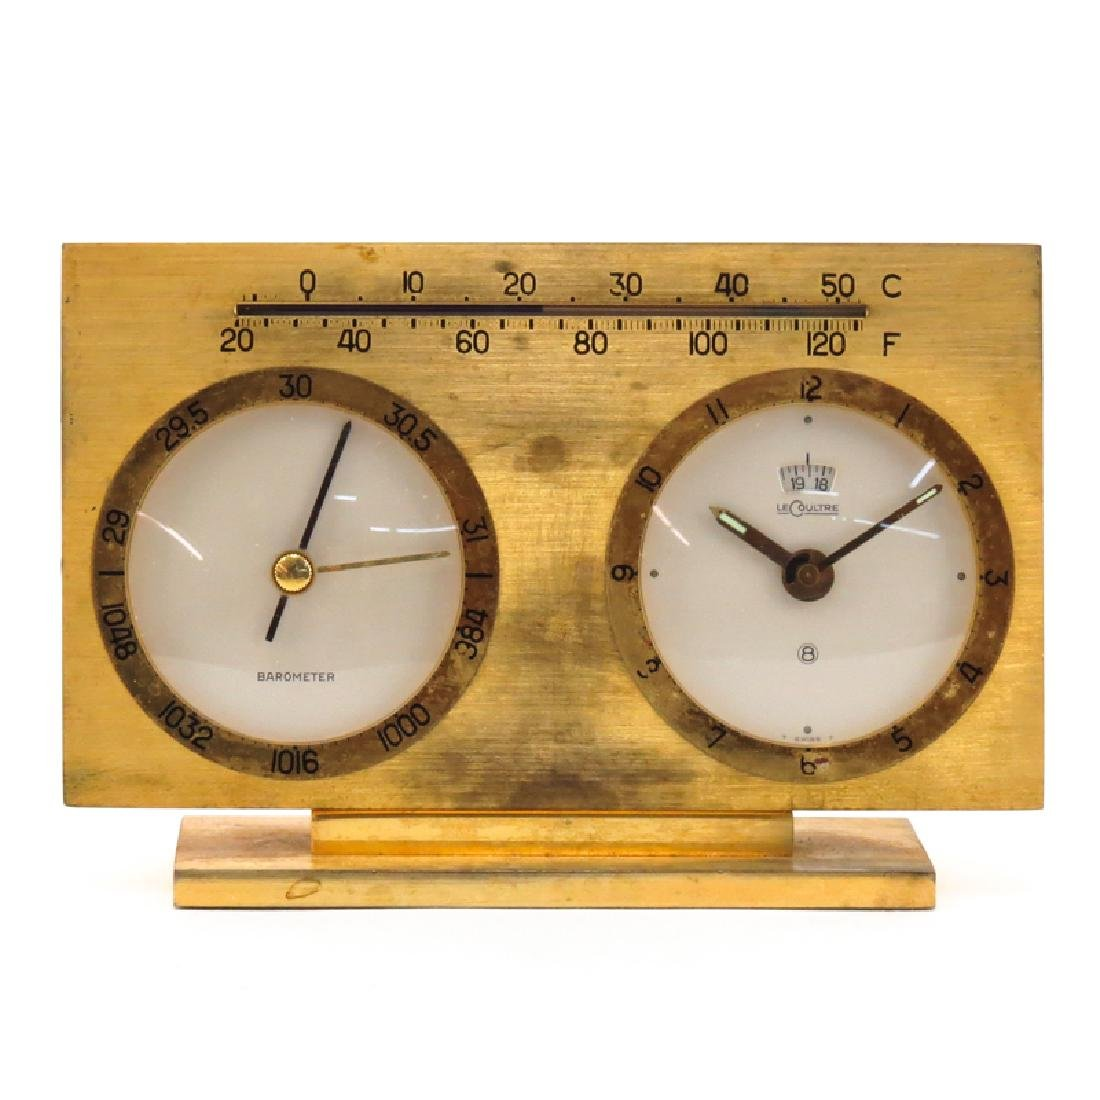 Vintage Le Coultre Brass Barometer Thermometer Desk